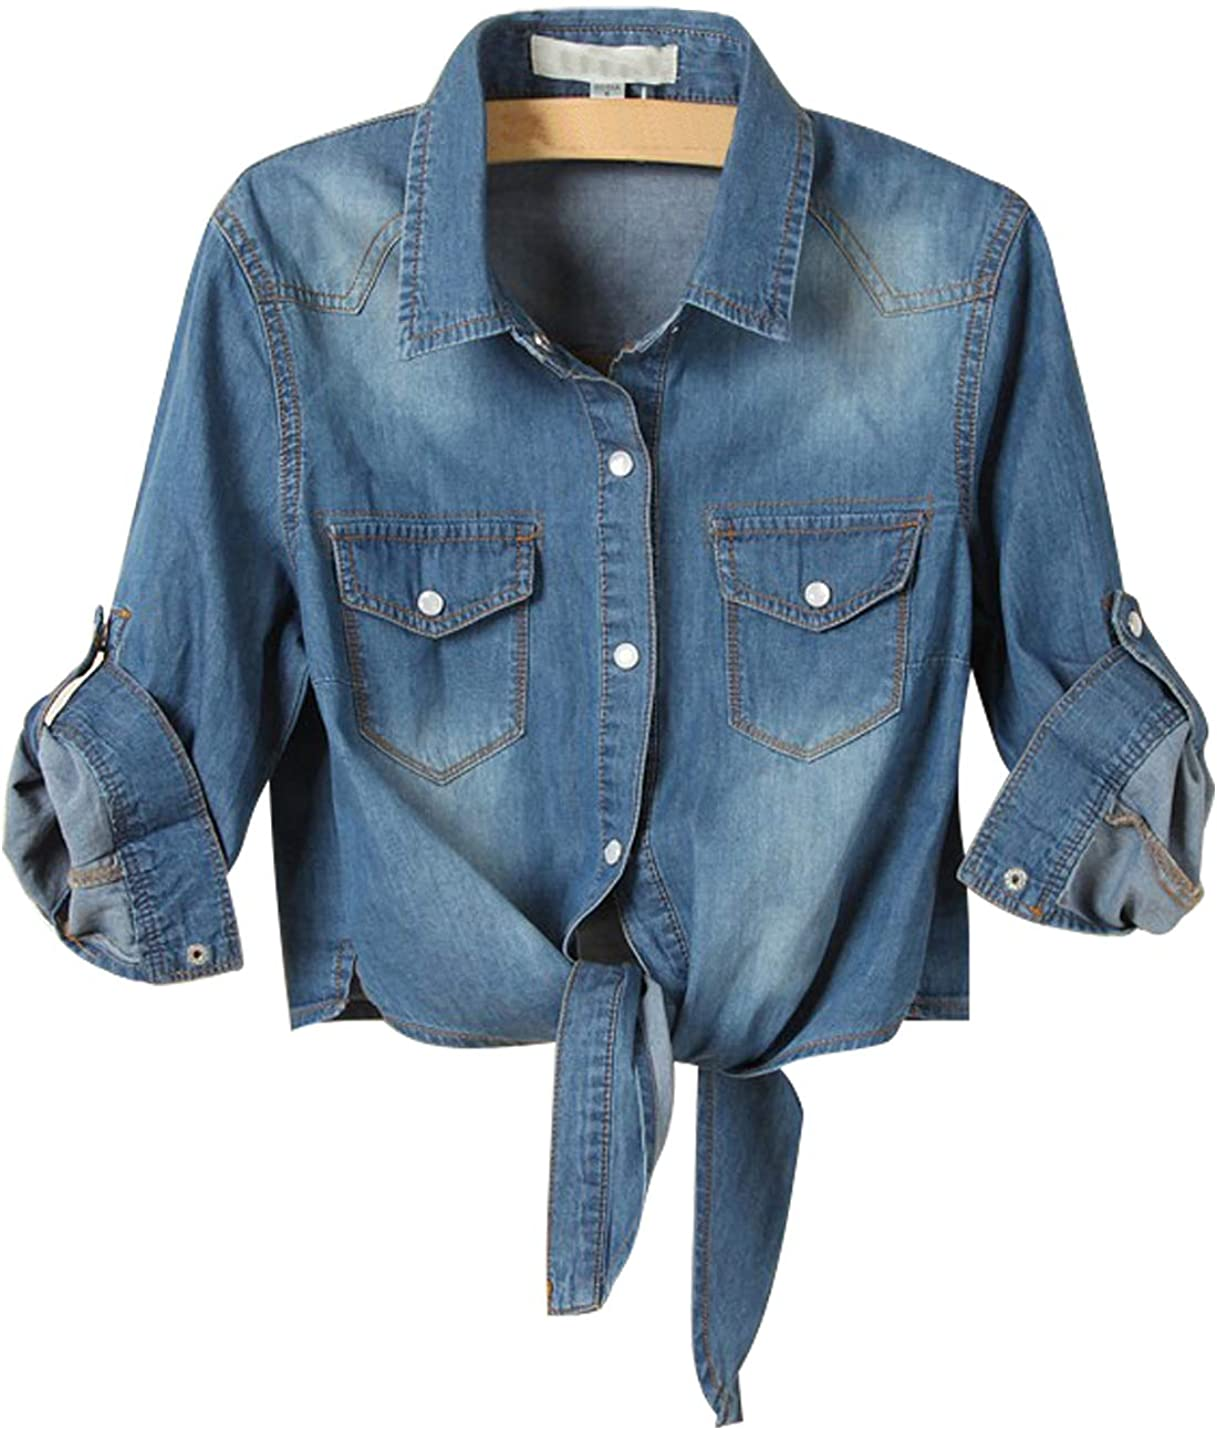 AMEBELLE Denim Shirts for Women 3/4 Roll Up Sleeve Tie Knot Front Chambray Jean Crop Top